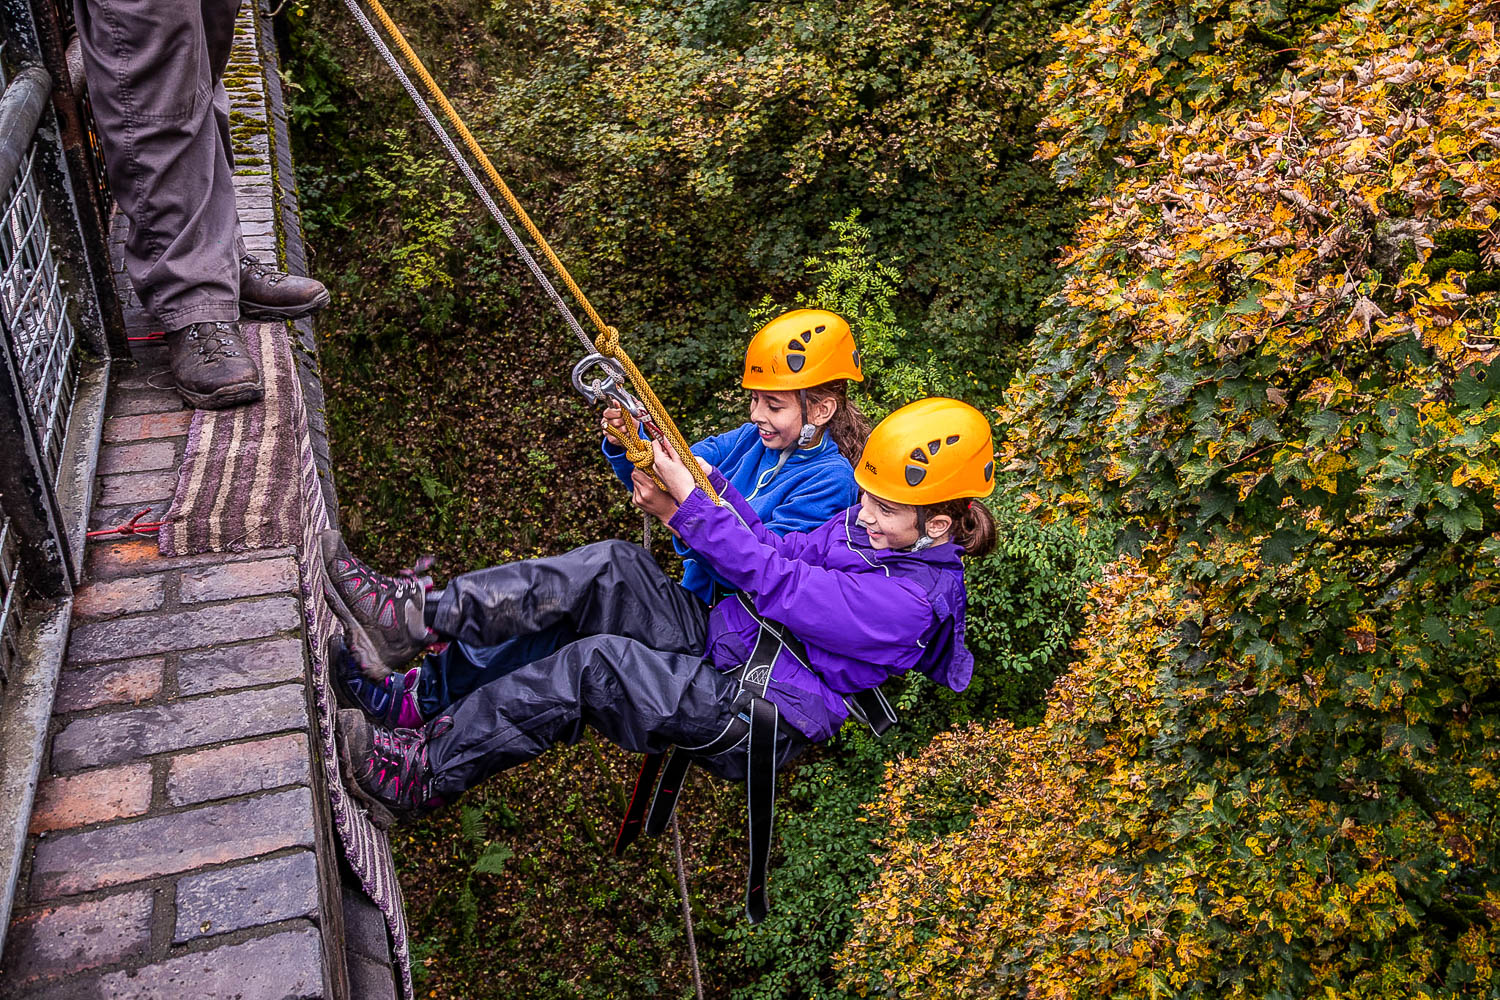 peak centre activity abseil 0834 1500 72